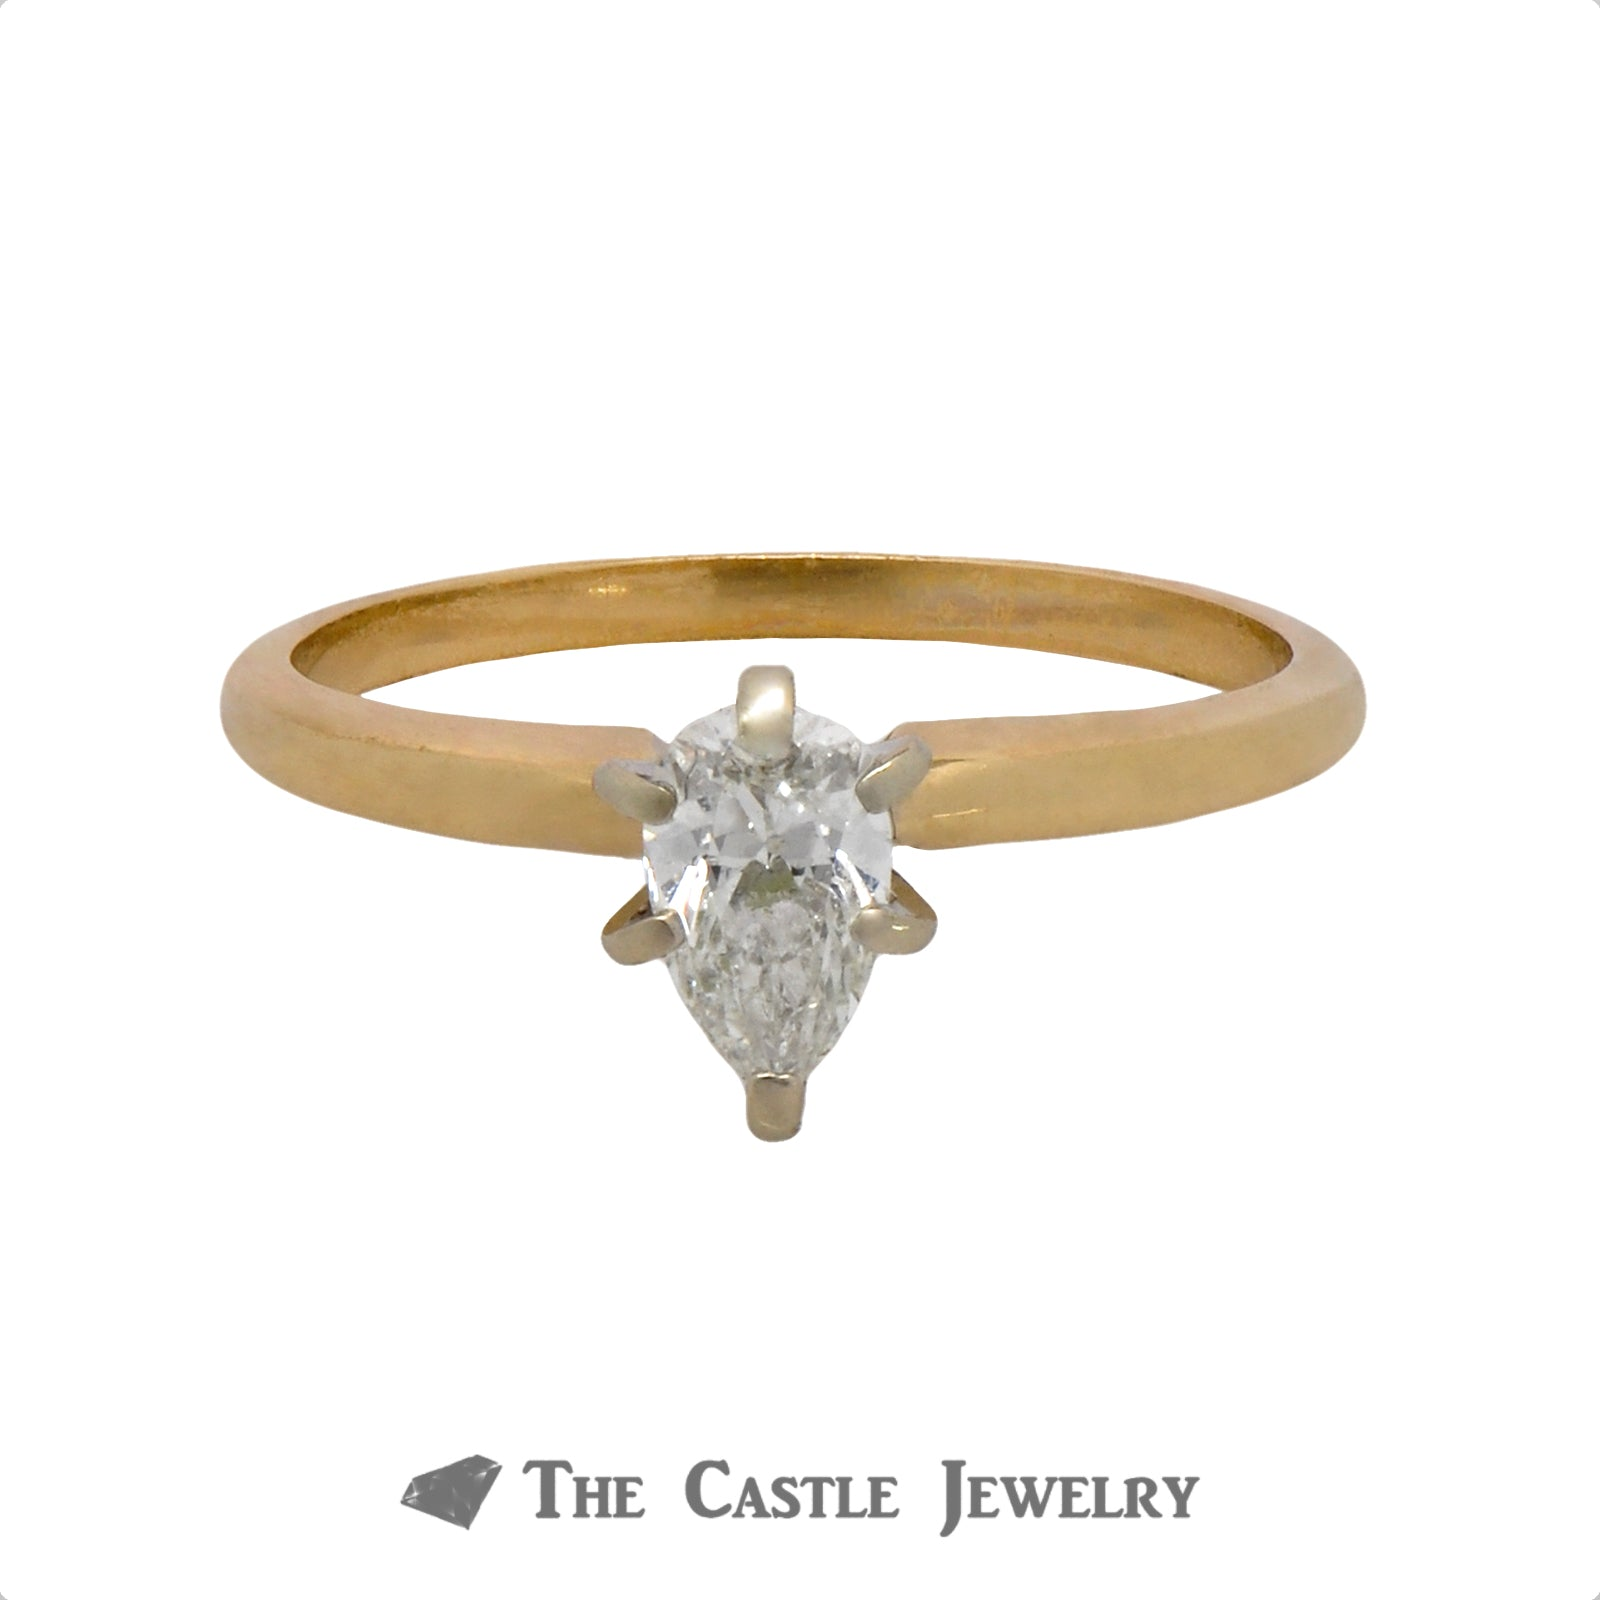 Pear Cut 1/2 carat Solitaire Engagement Ring in 14K Yellow Gold